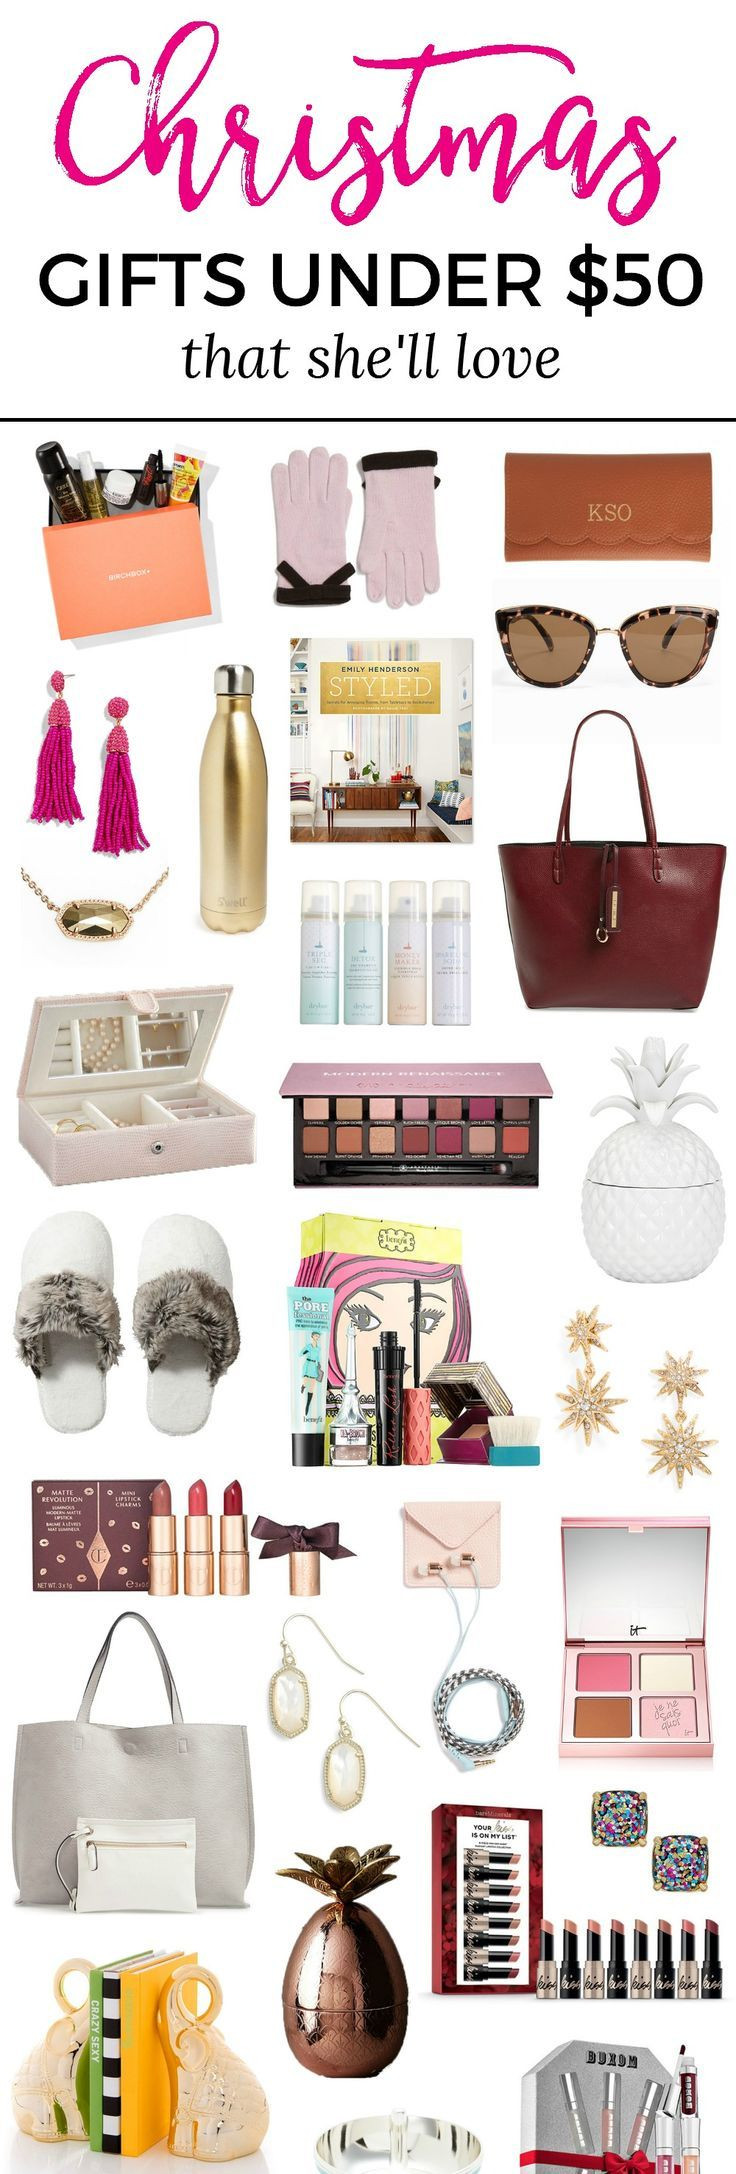 Great Holiday Gift Ideas  17 Best Christmas Gift Ideas on Pinterest